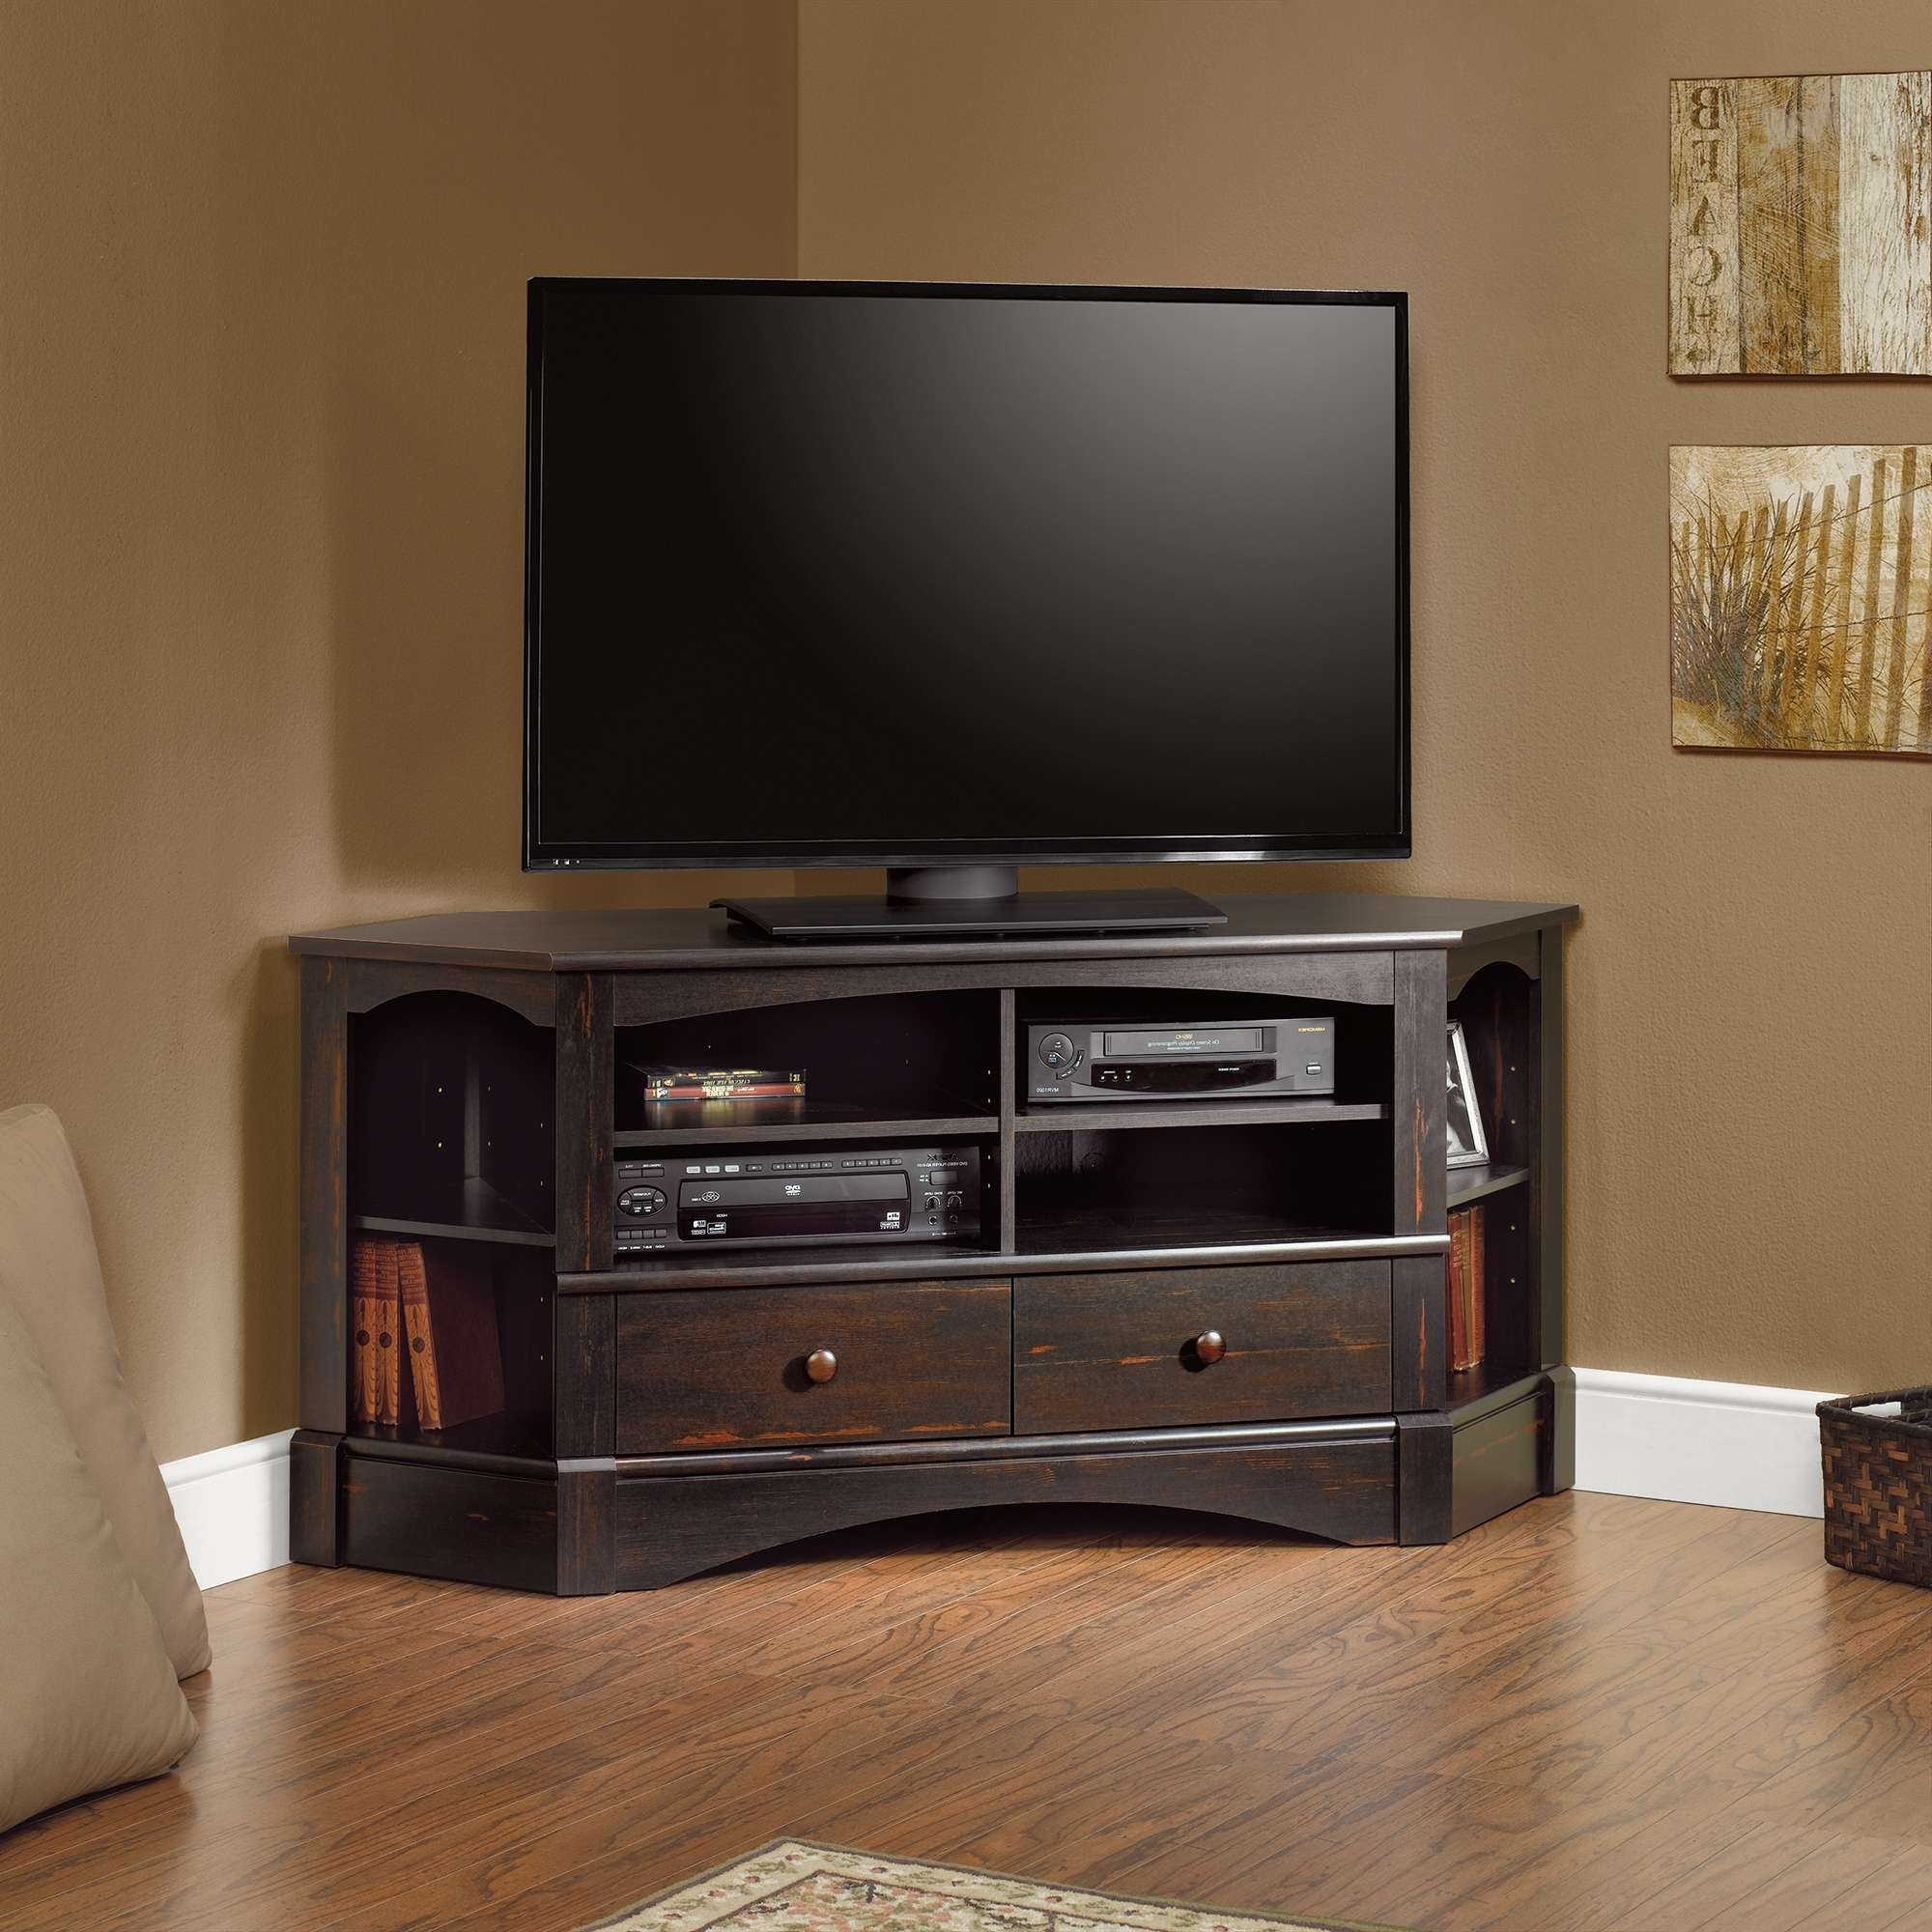 Harbor View | Corner Entertainment Credenza | 402902 | Sauder Inside Tv Stands Corner Units (View 10 of 15)